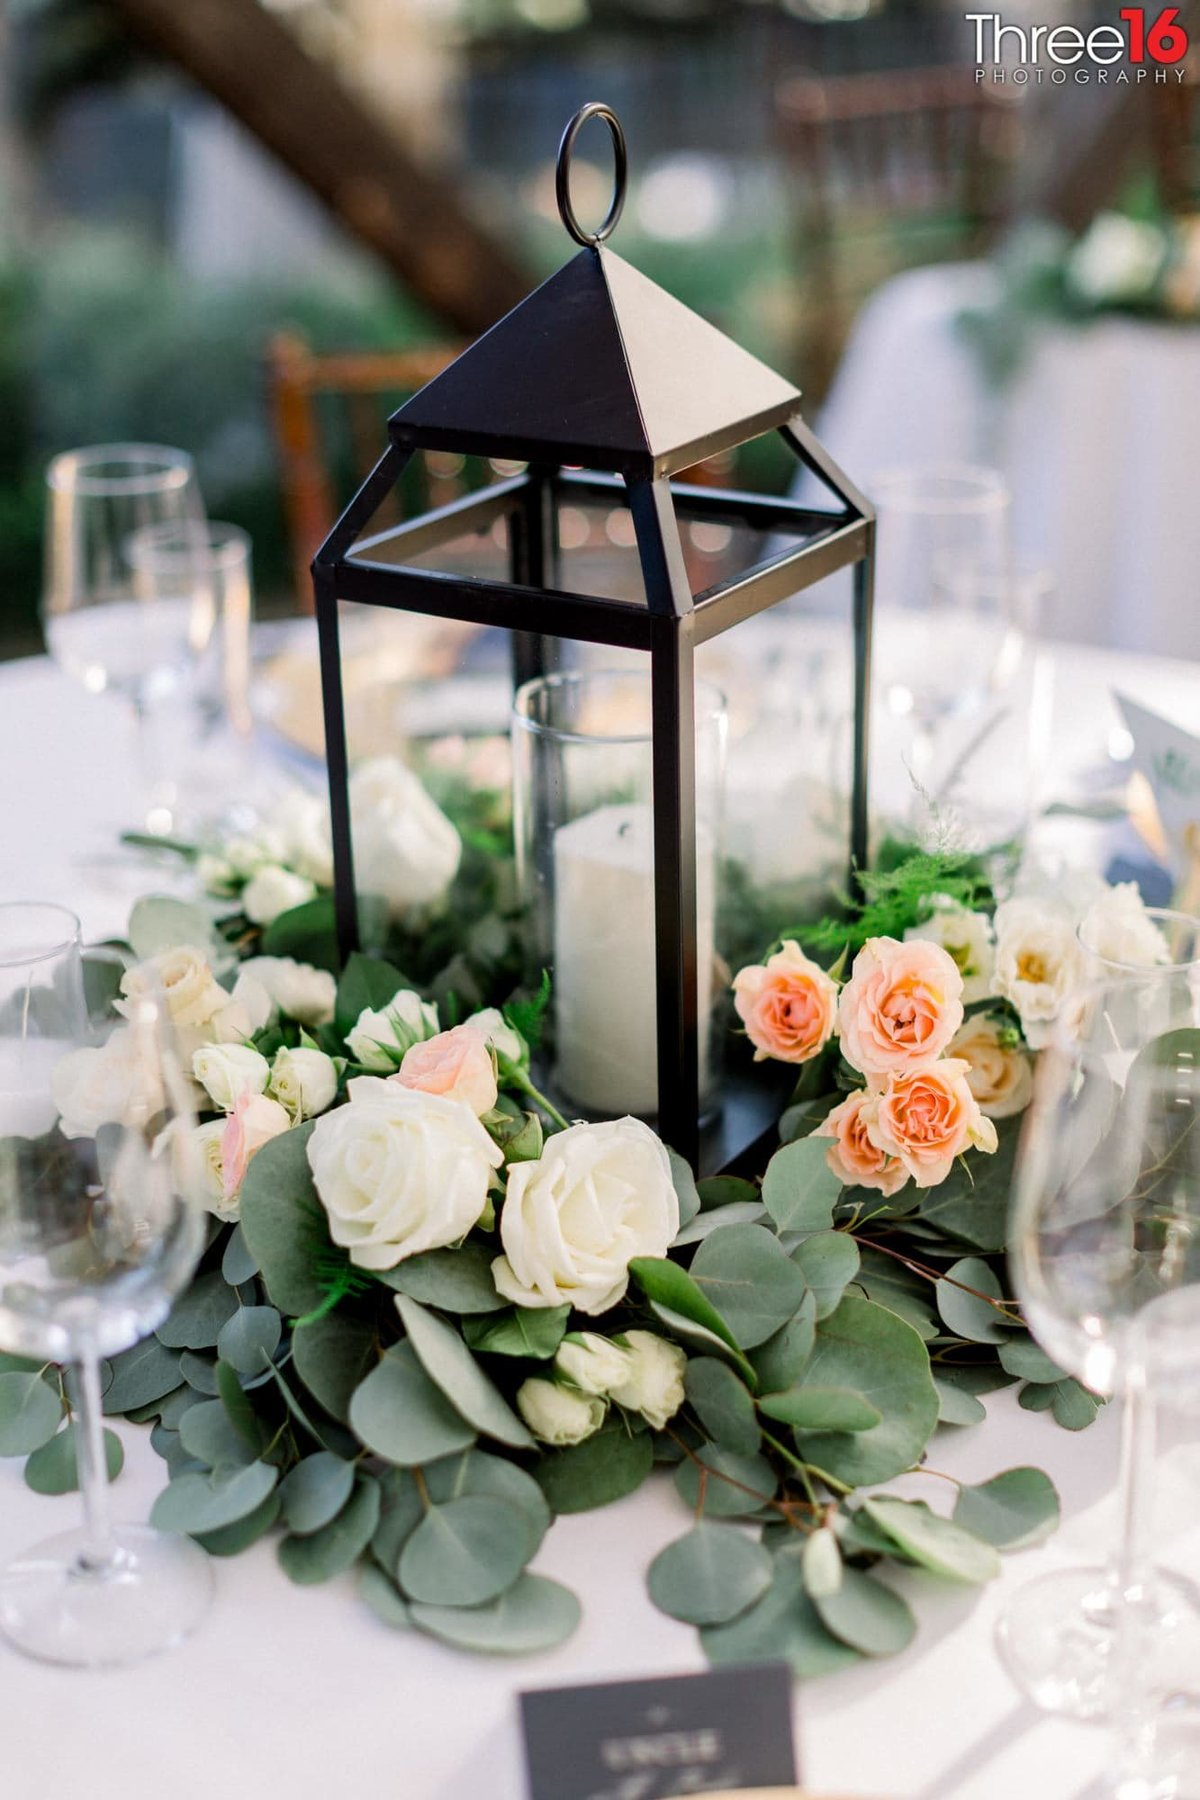 Centerpiece at a wedding reception that includes a candle surrounded by flowers